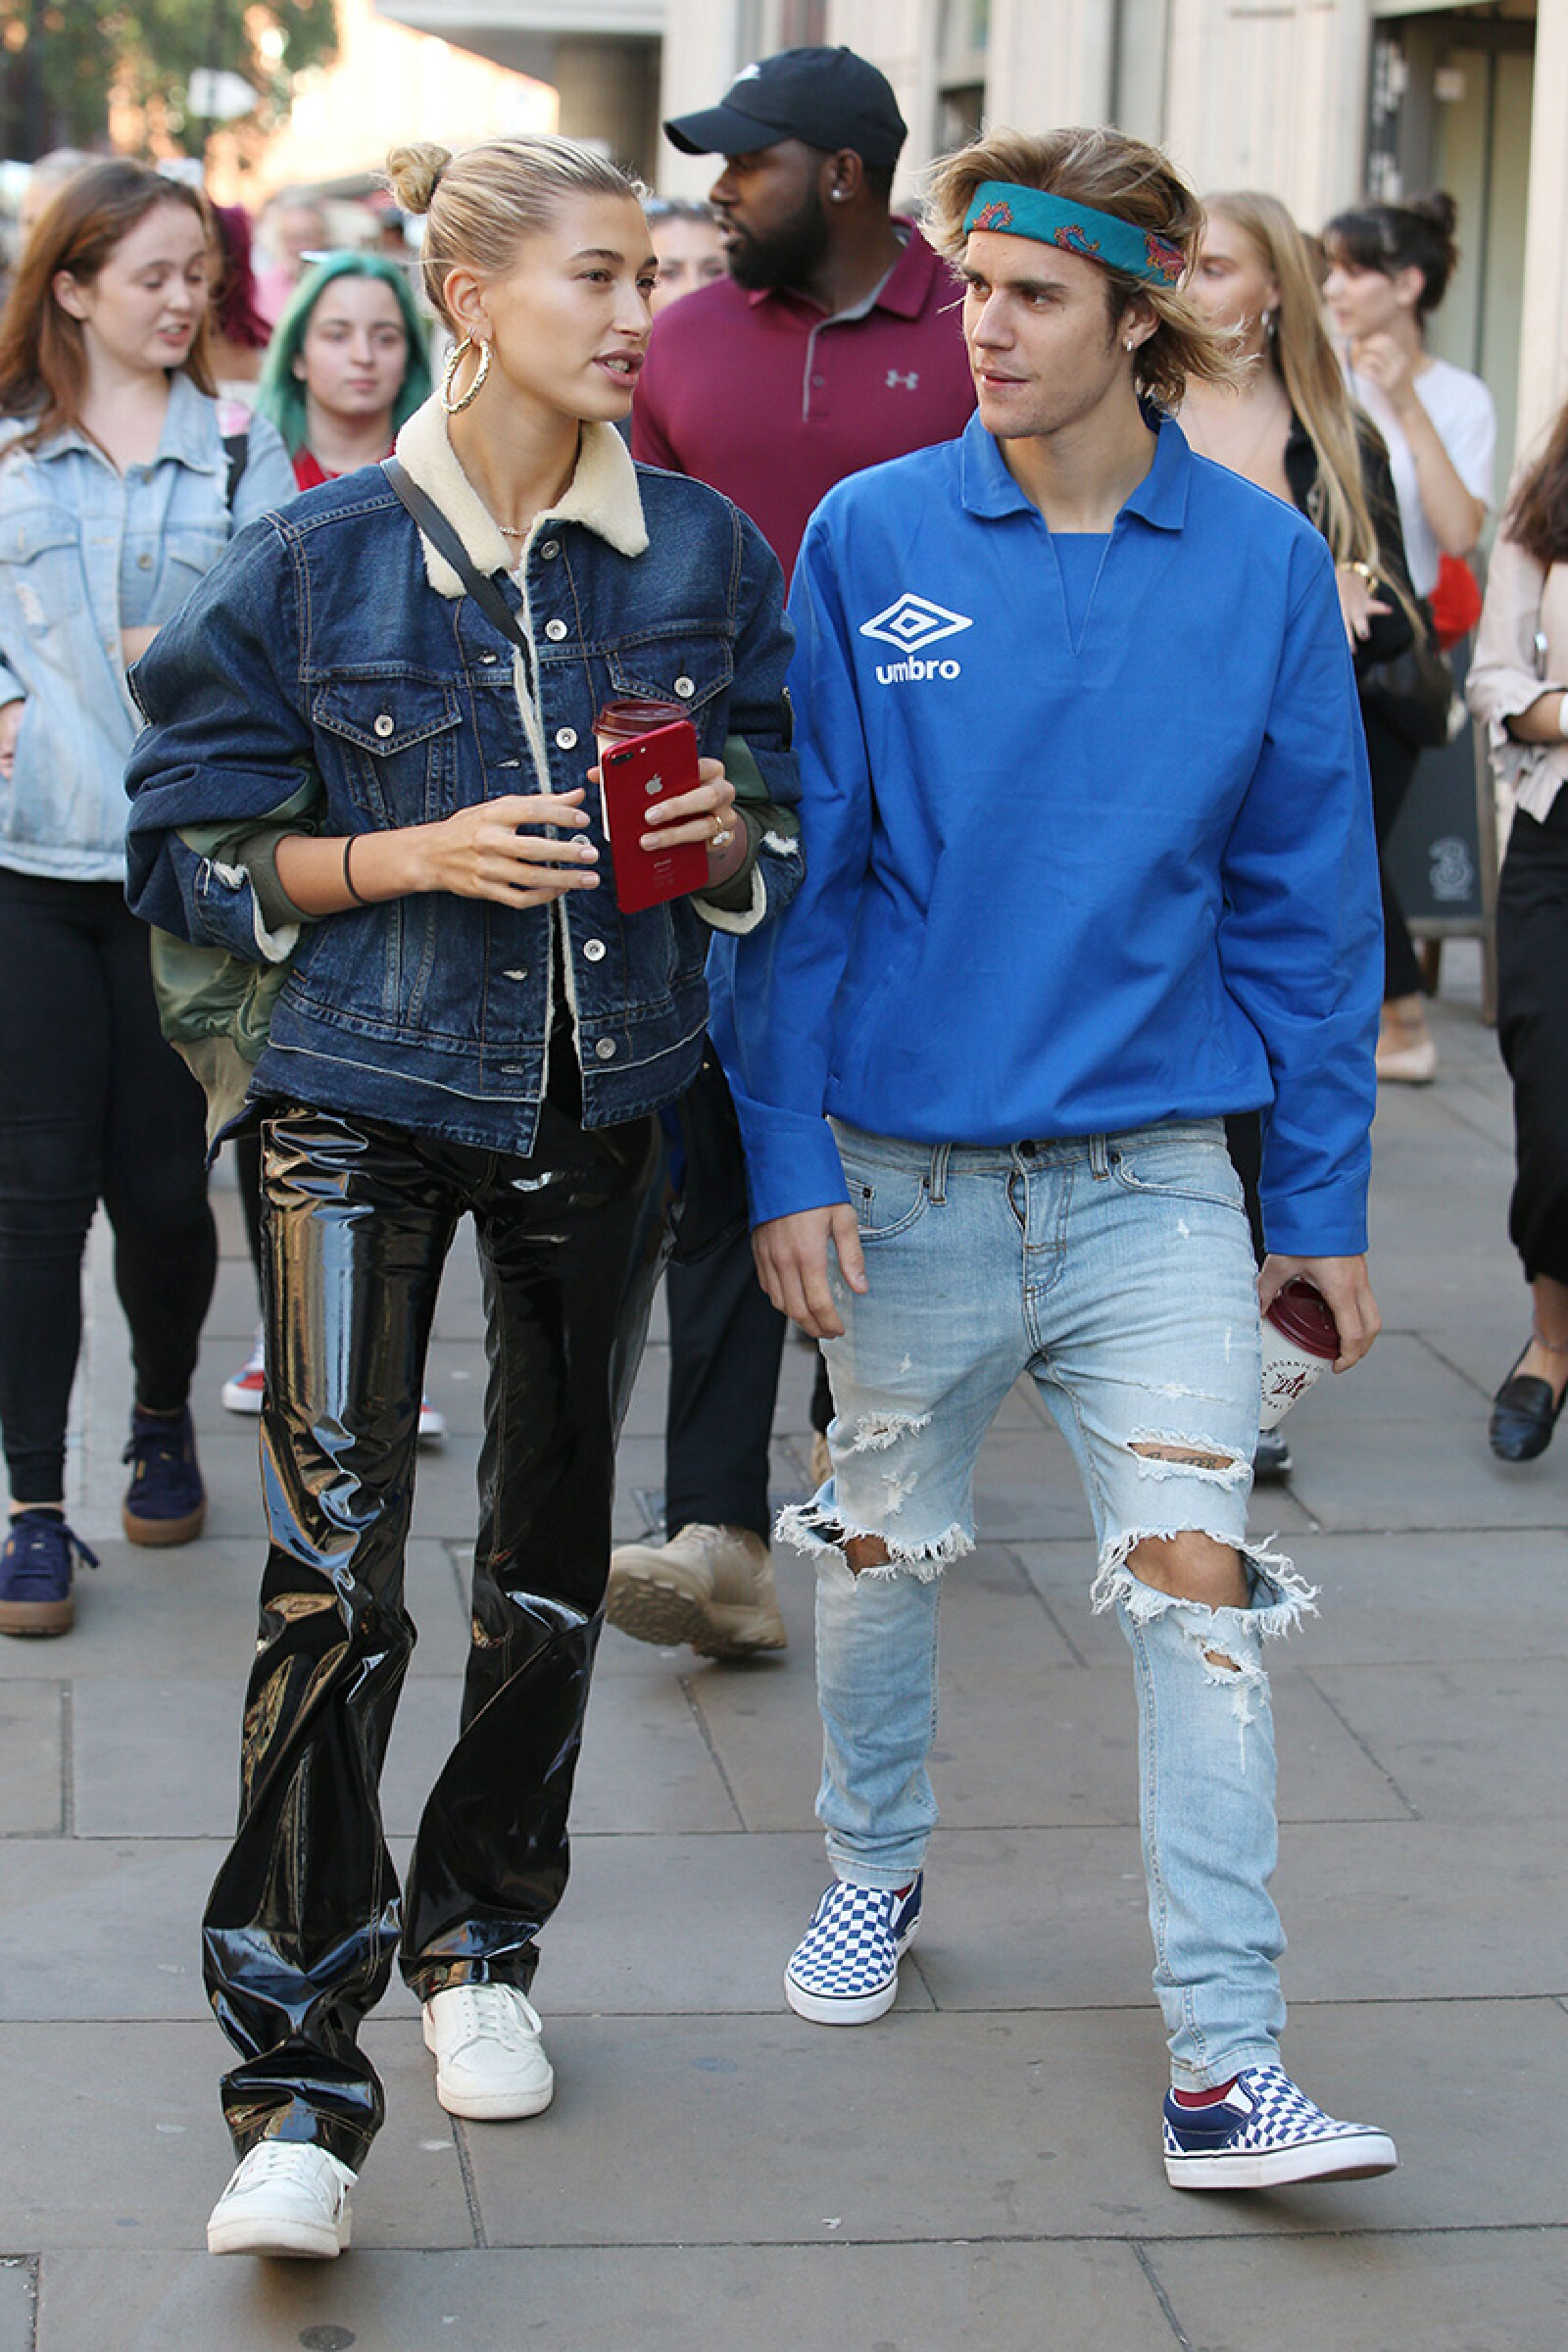 Justin Bieber and Hailey Baldwin out and about, London, UK - 17 Sep 2018